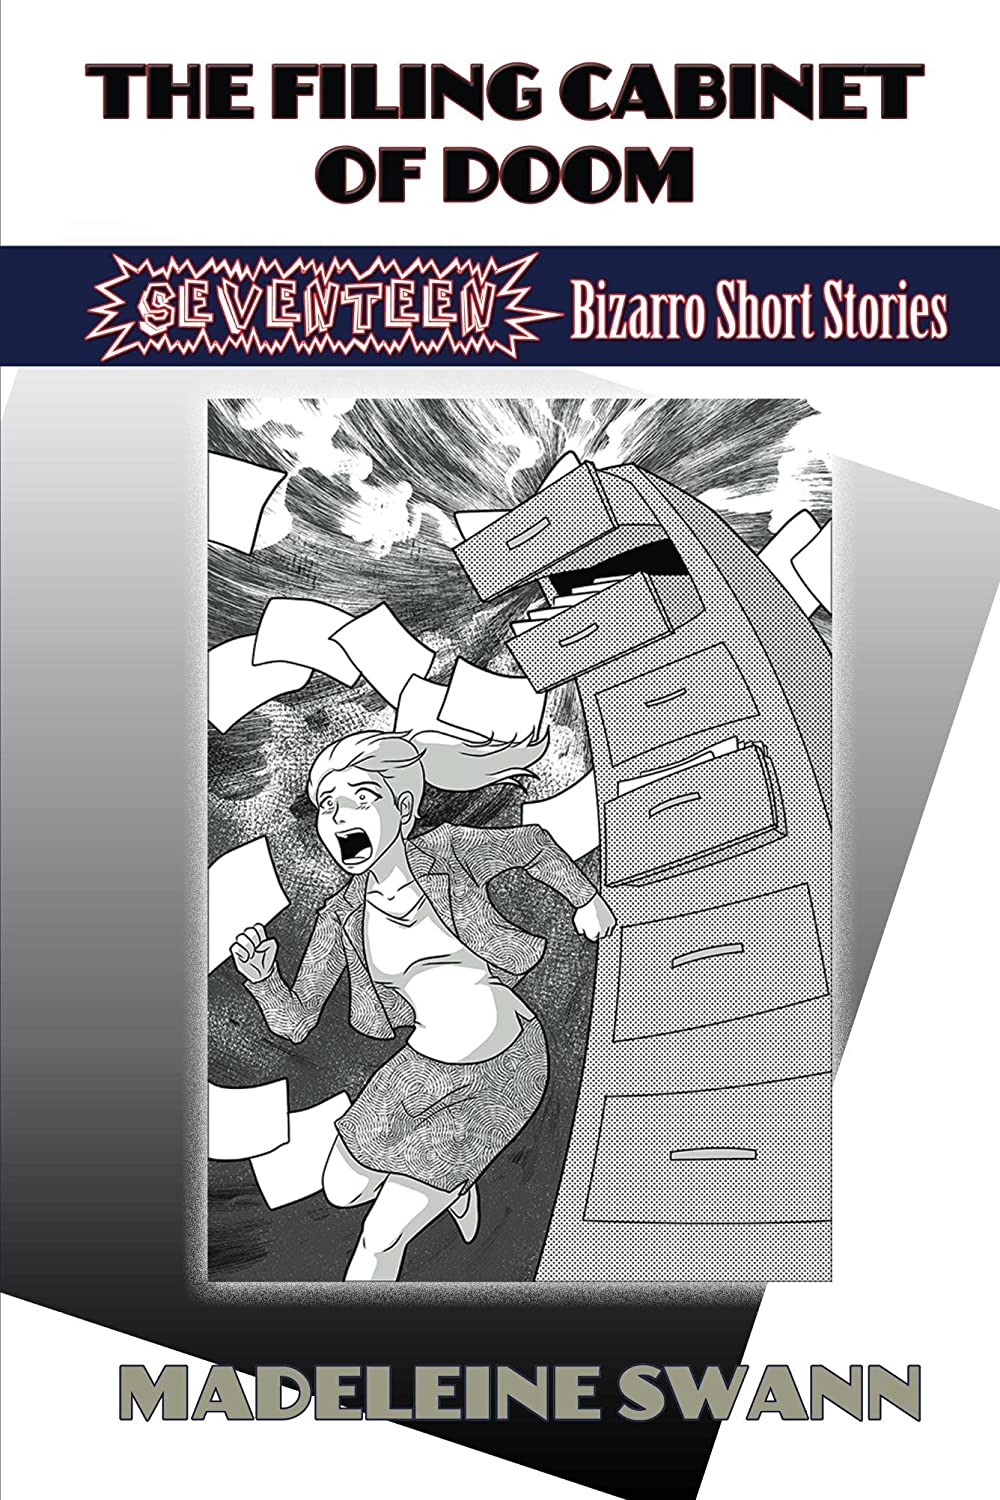 The Filing Cabinet of Doom: 17 Bizarro Short Stories by Madeleine Swann